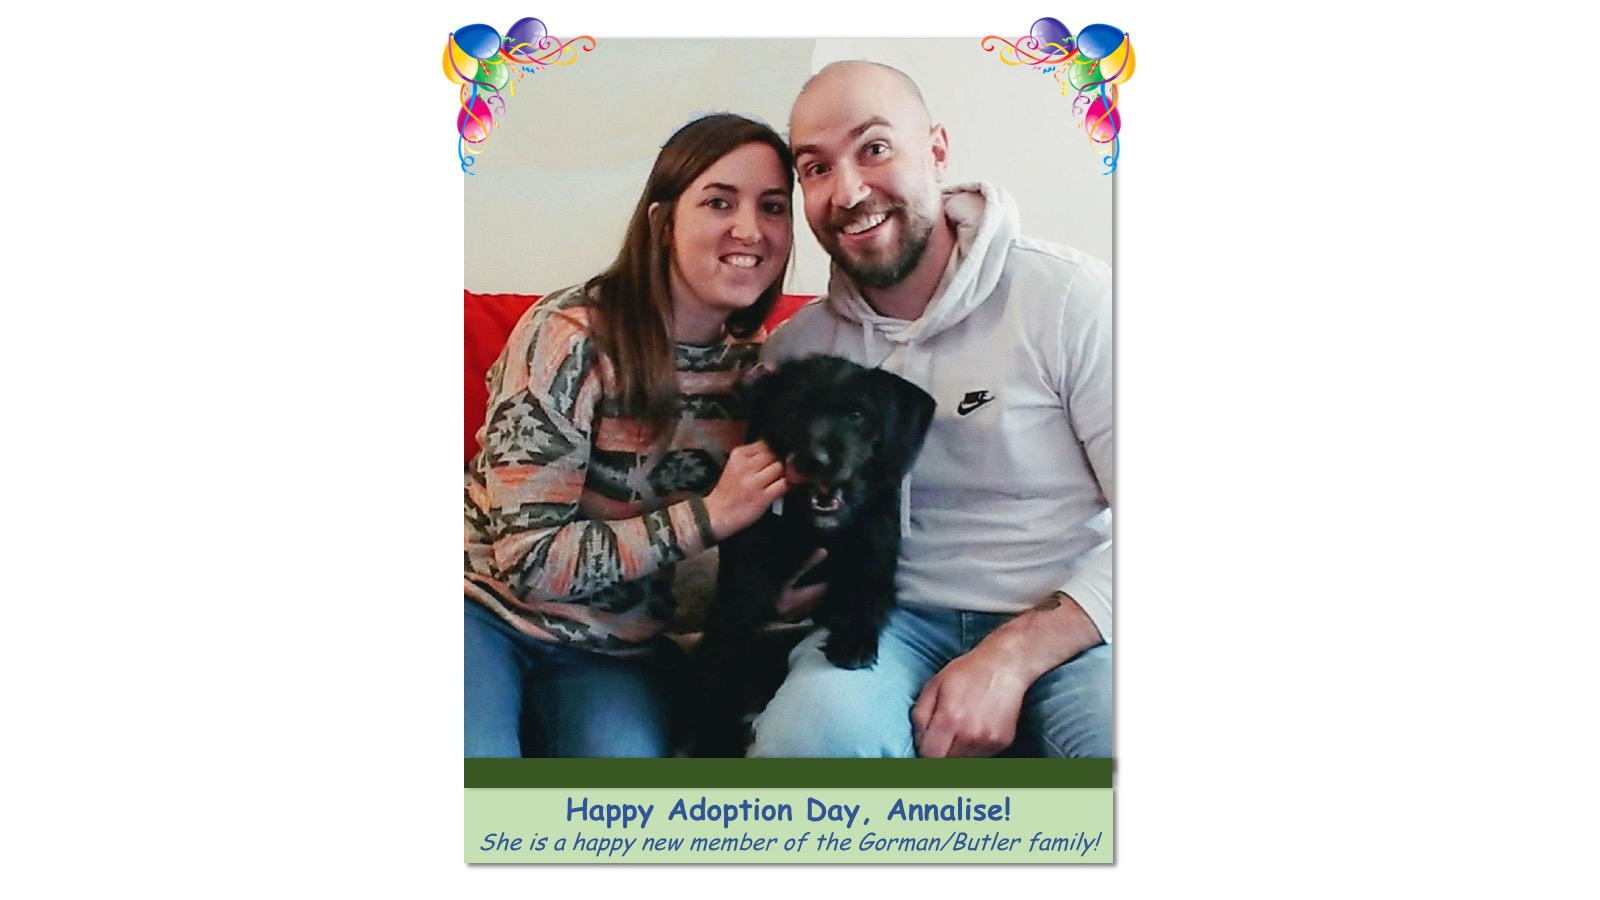 Annalise_Adoption_Photo99366.jpg